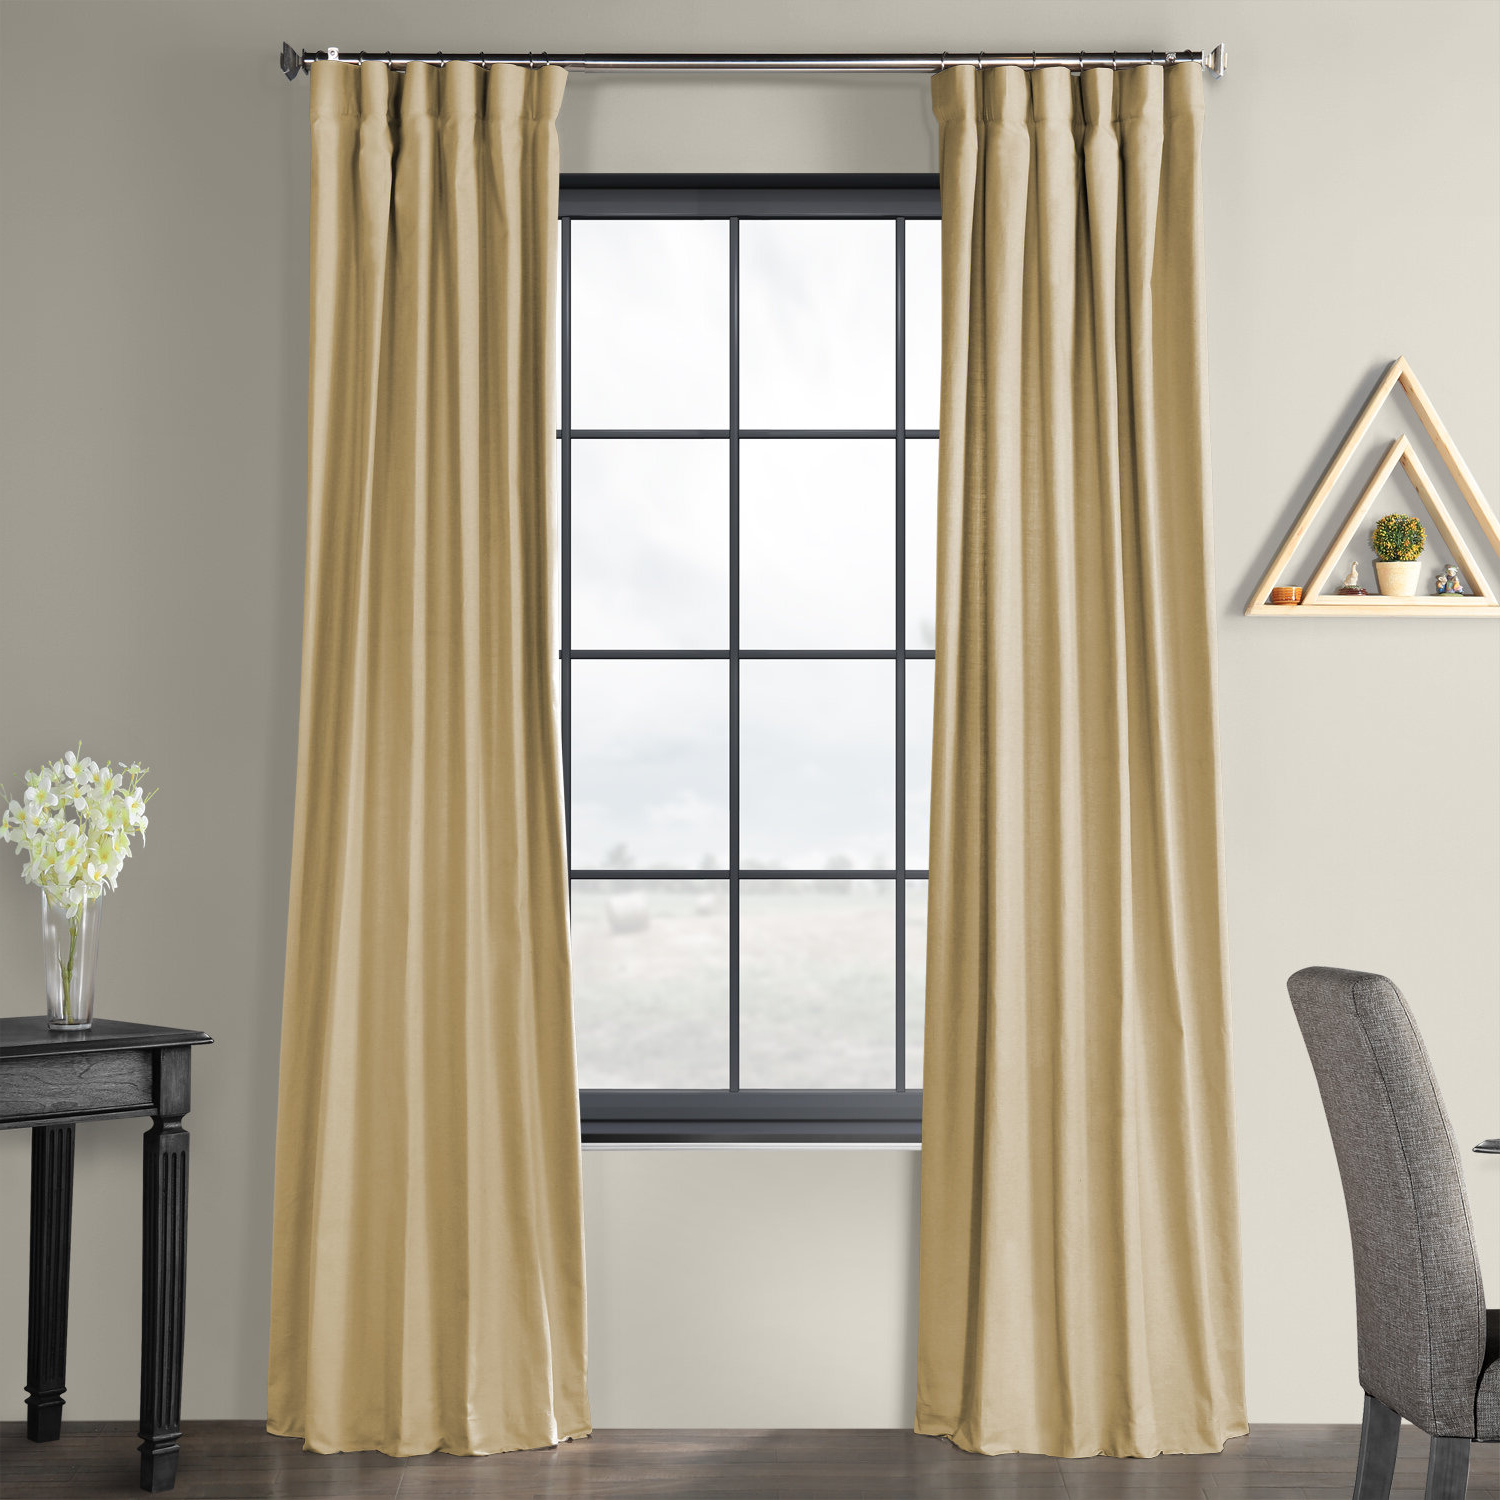 Famous Solid Country Cotton Linen Weave Curtain Panels Inside Sanger Solid Country Cotton Linen Weave Rod Pocket Single Curtain Panel (View 5 of 20)